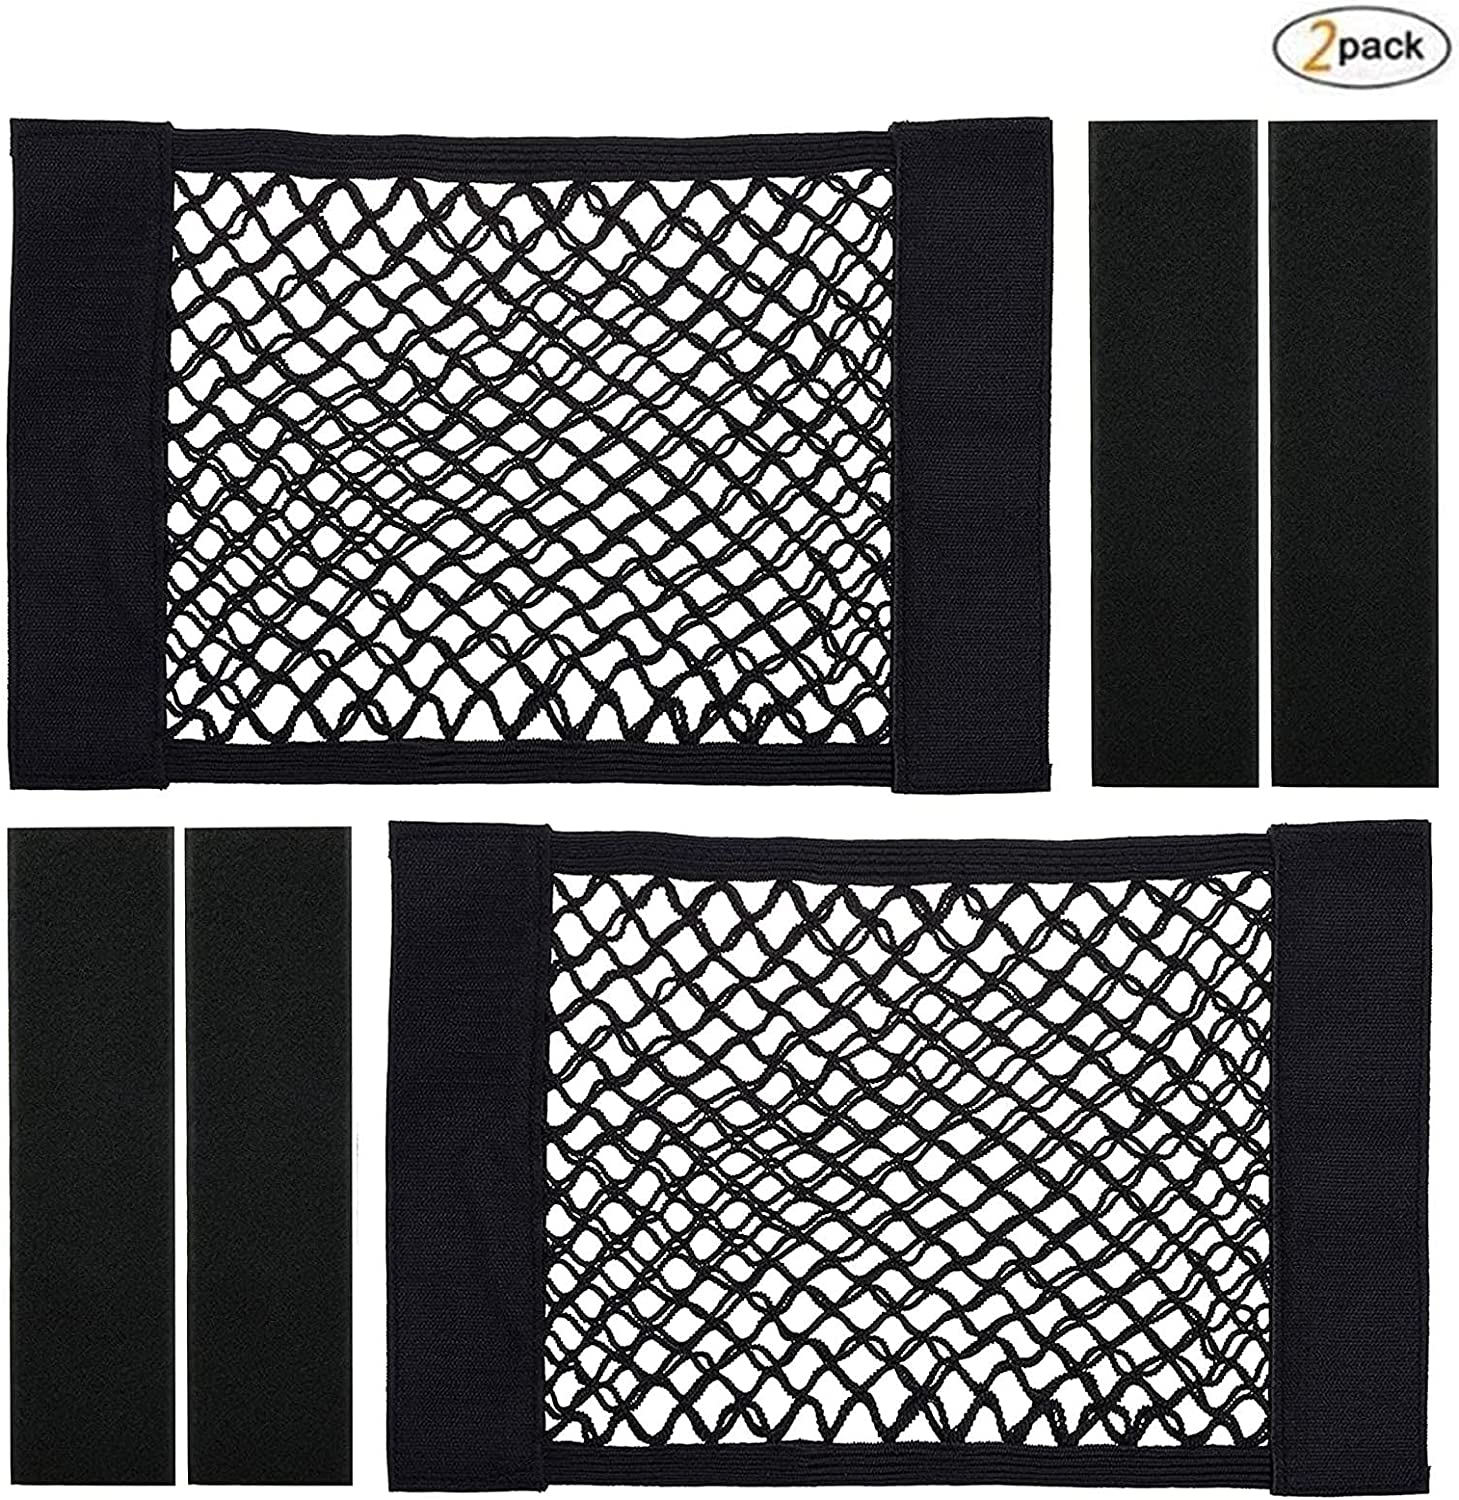 New product 2 Pack Trunk Storage Net Ne Car Cargo Reservation Mesh Universal